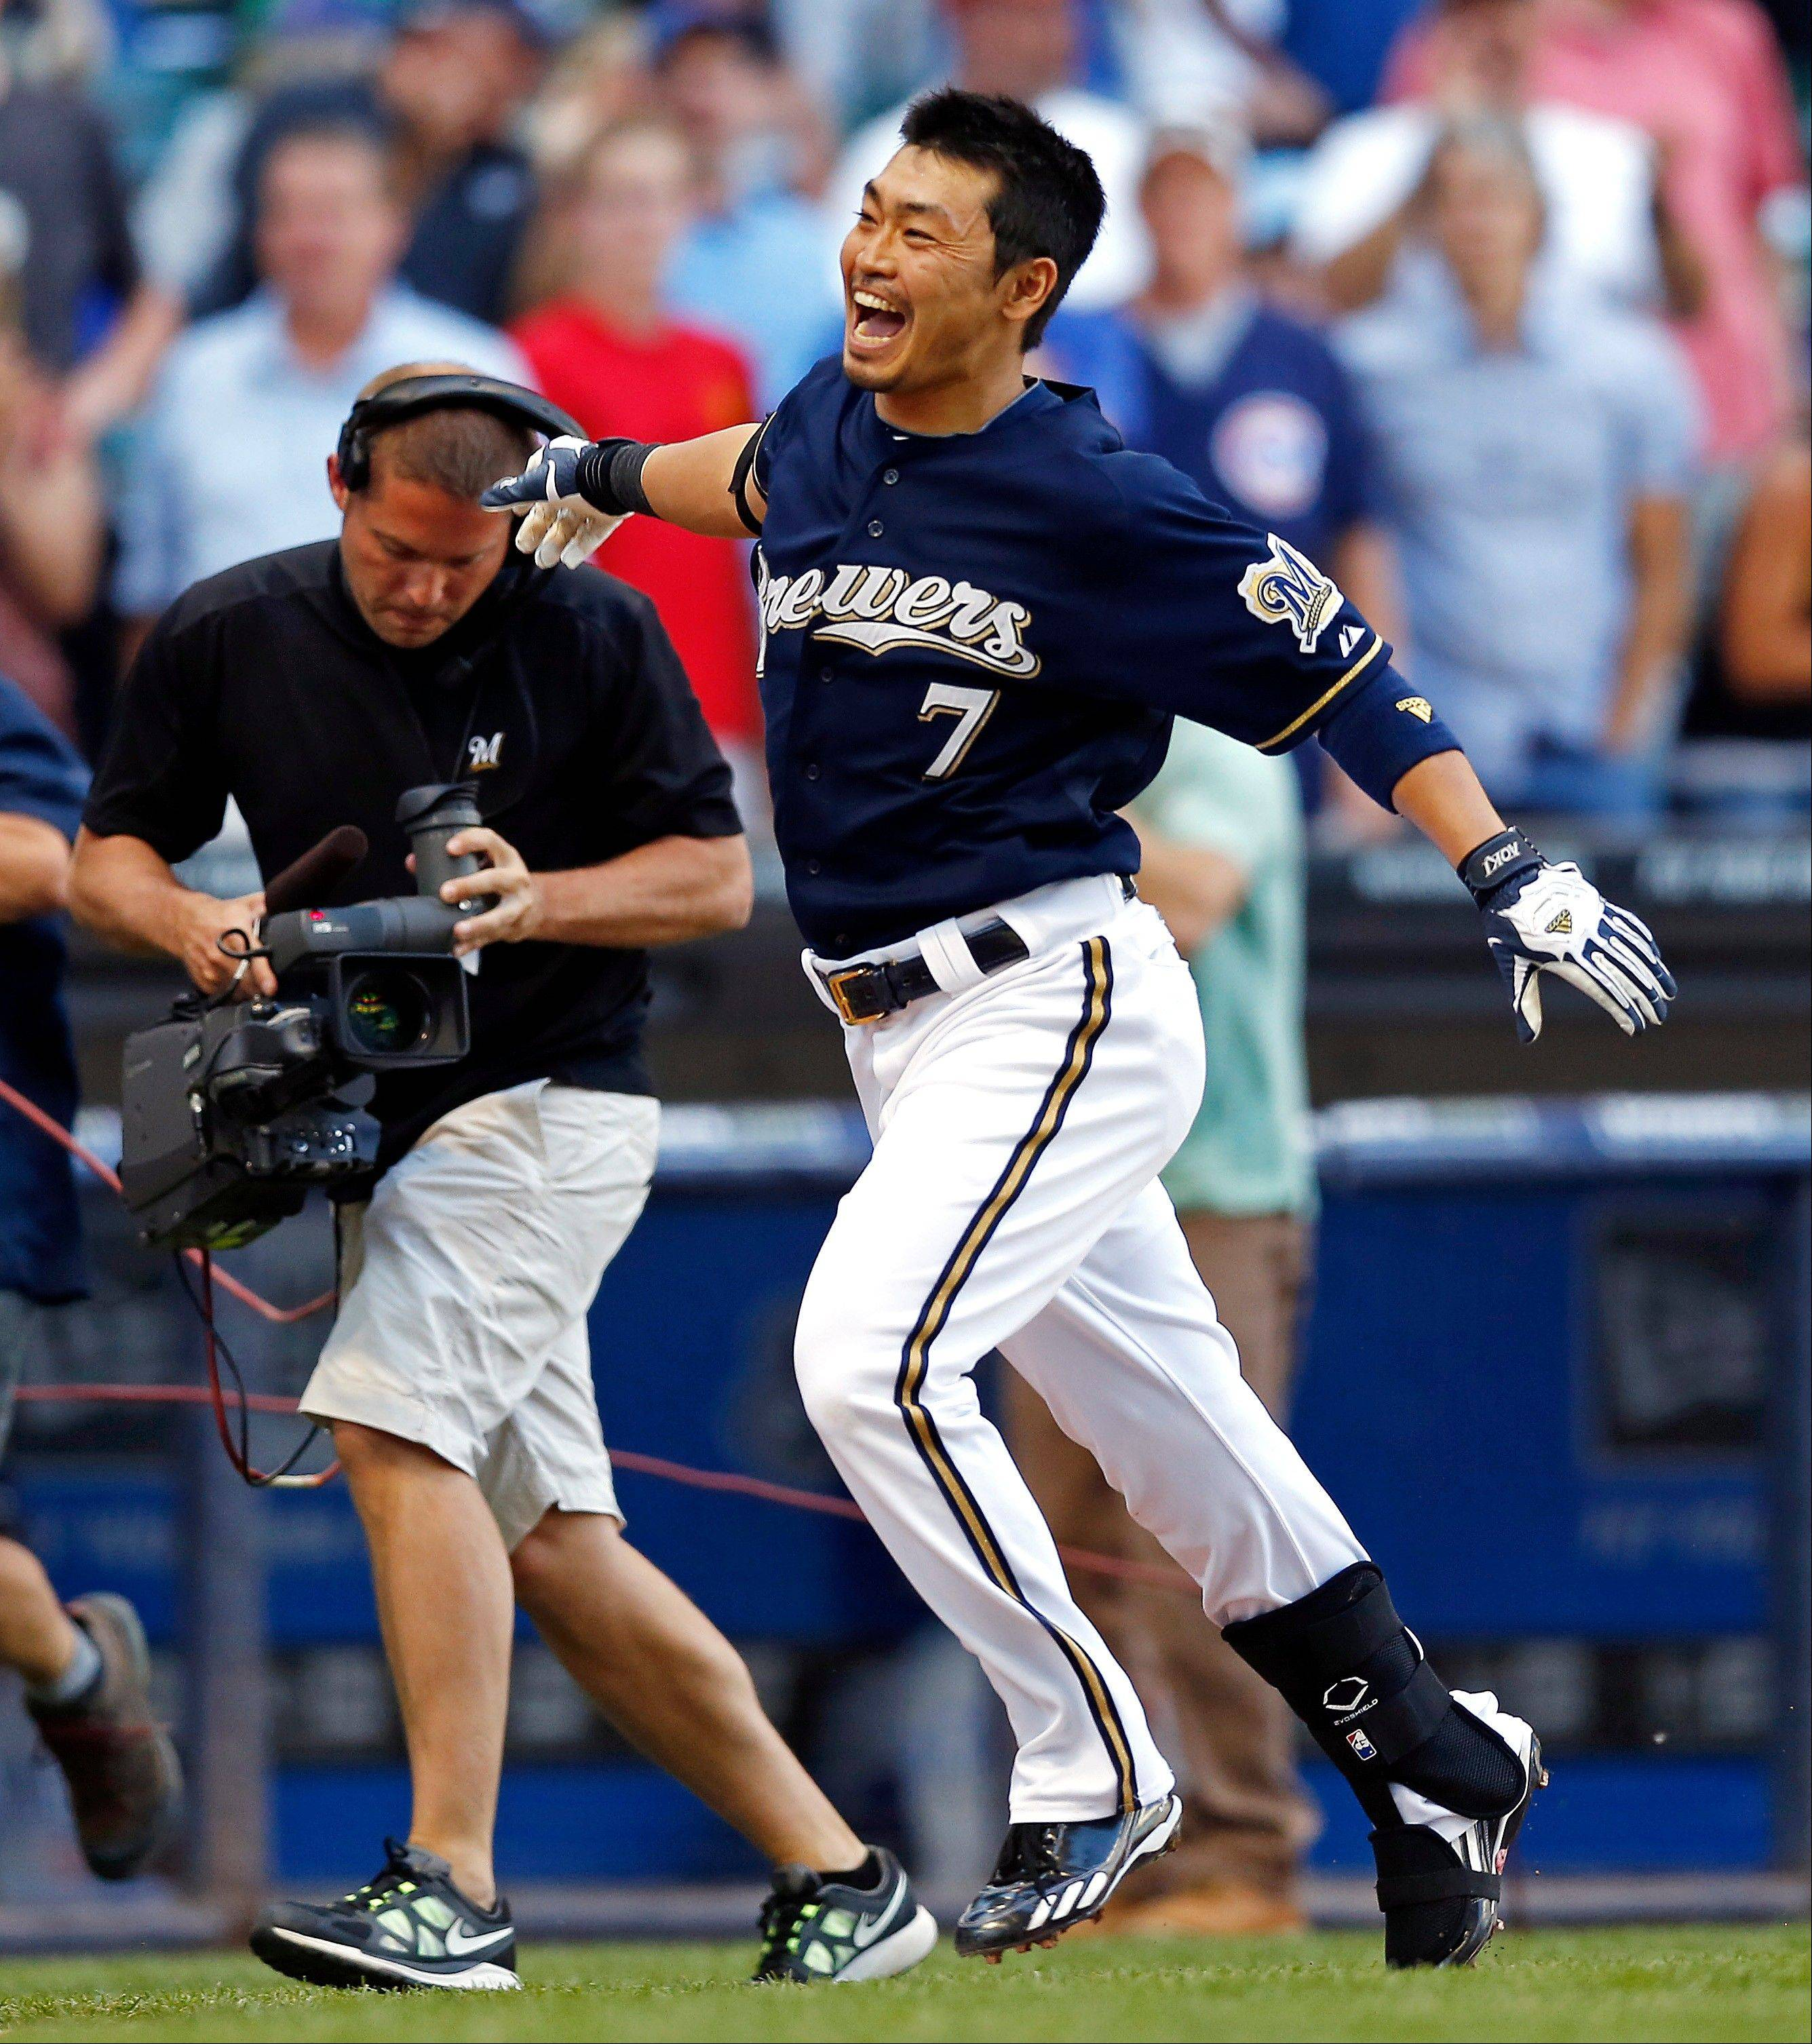 The Brewers' Norichika Aoki celebrates his walk-off home run to defeat the Cubs on Thursday in 10 innings.